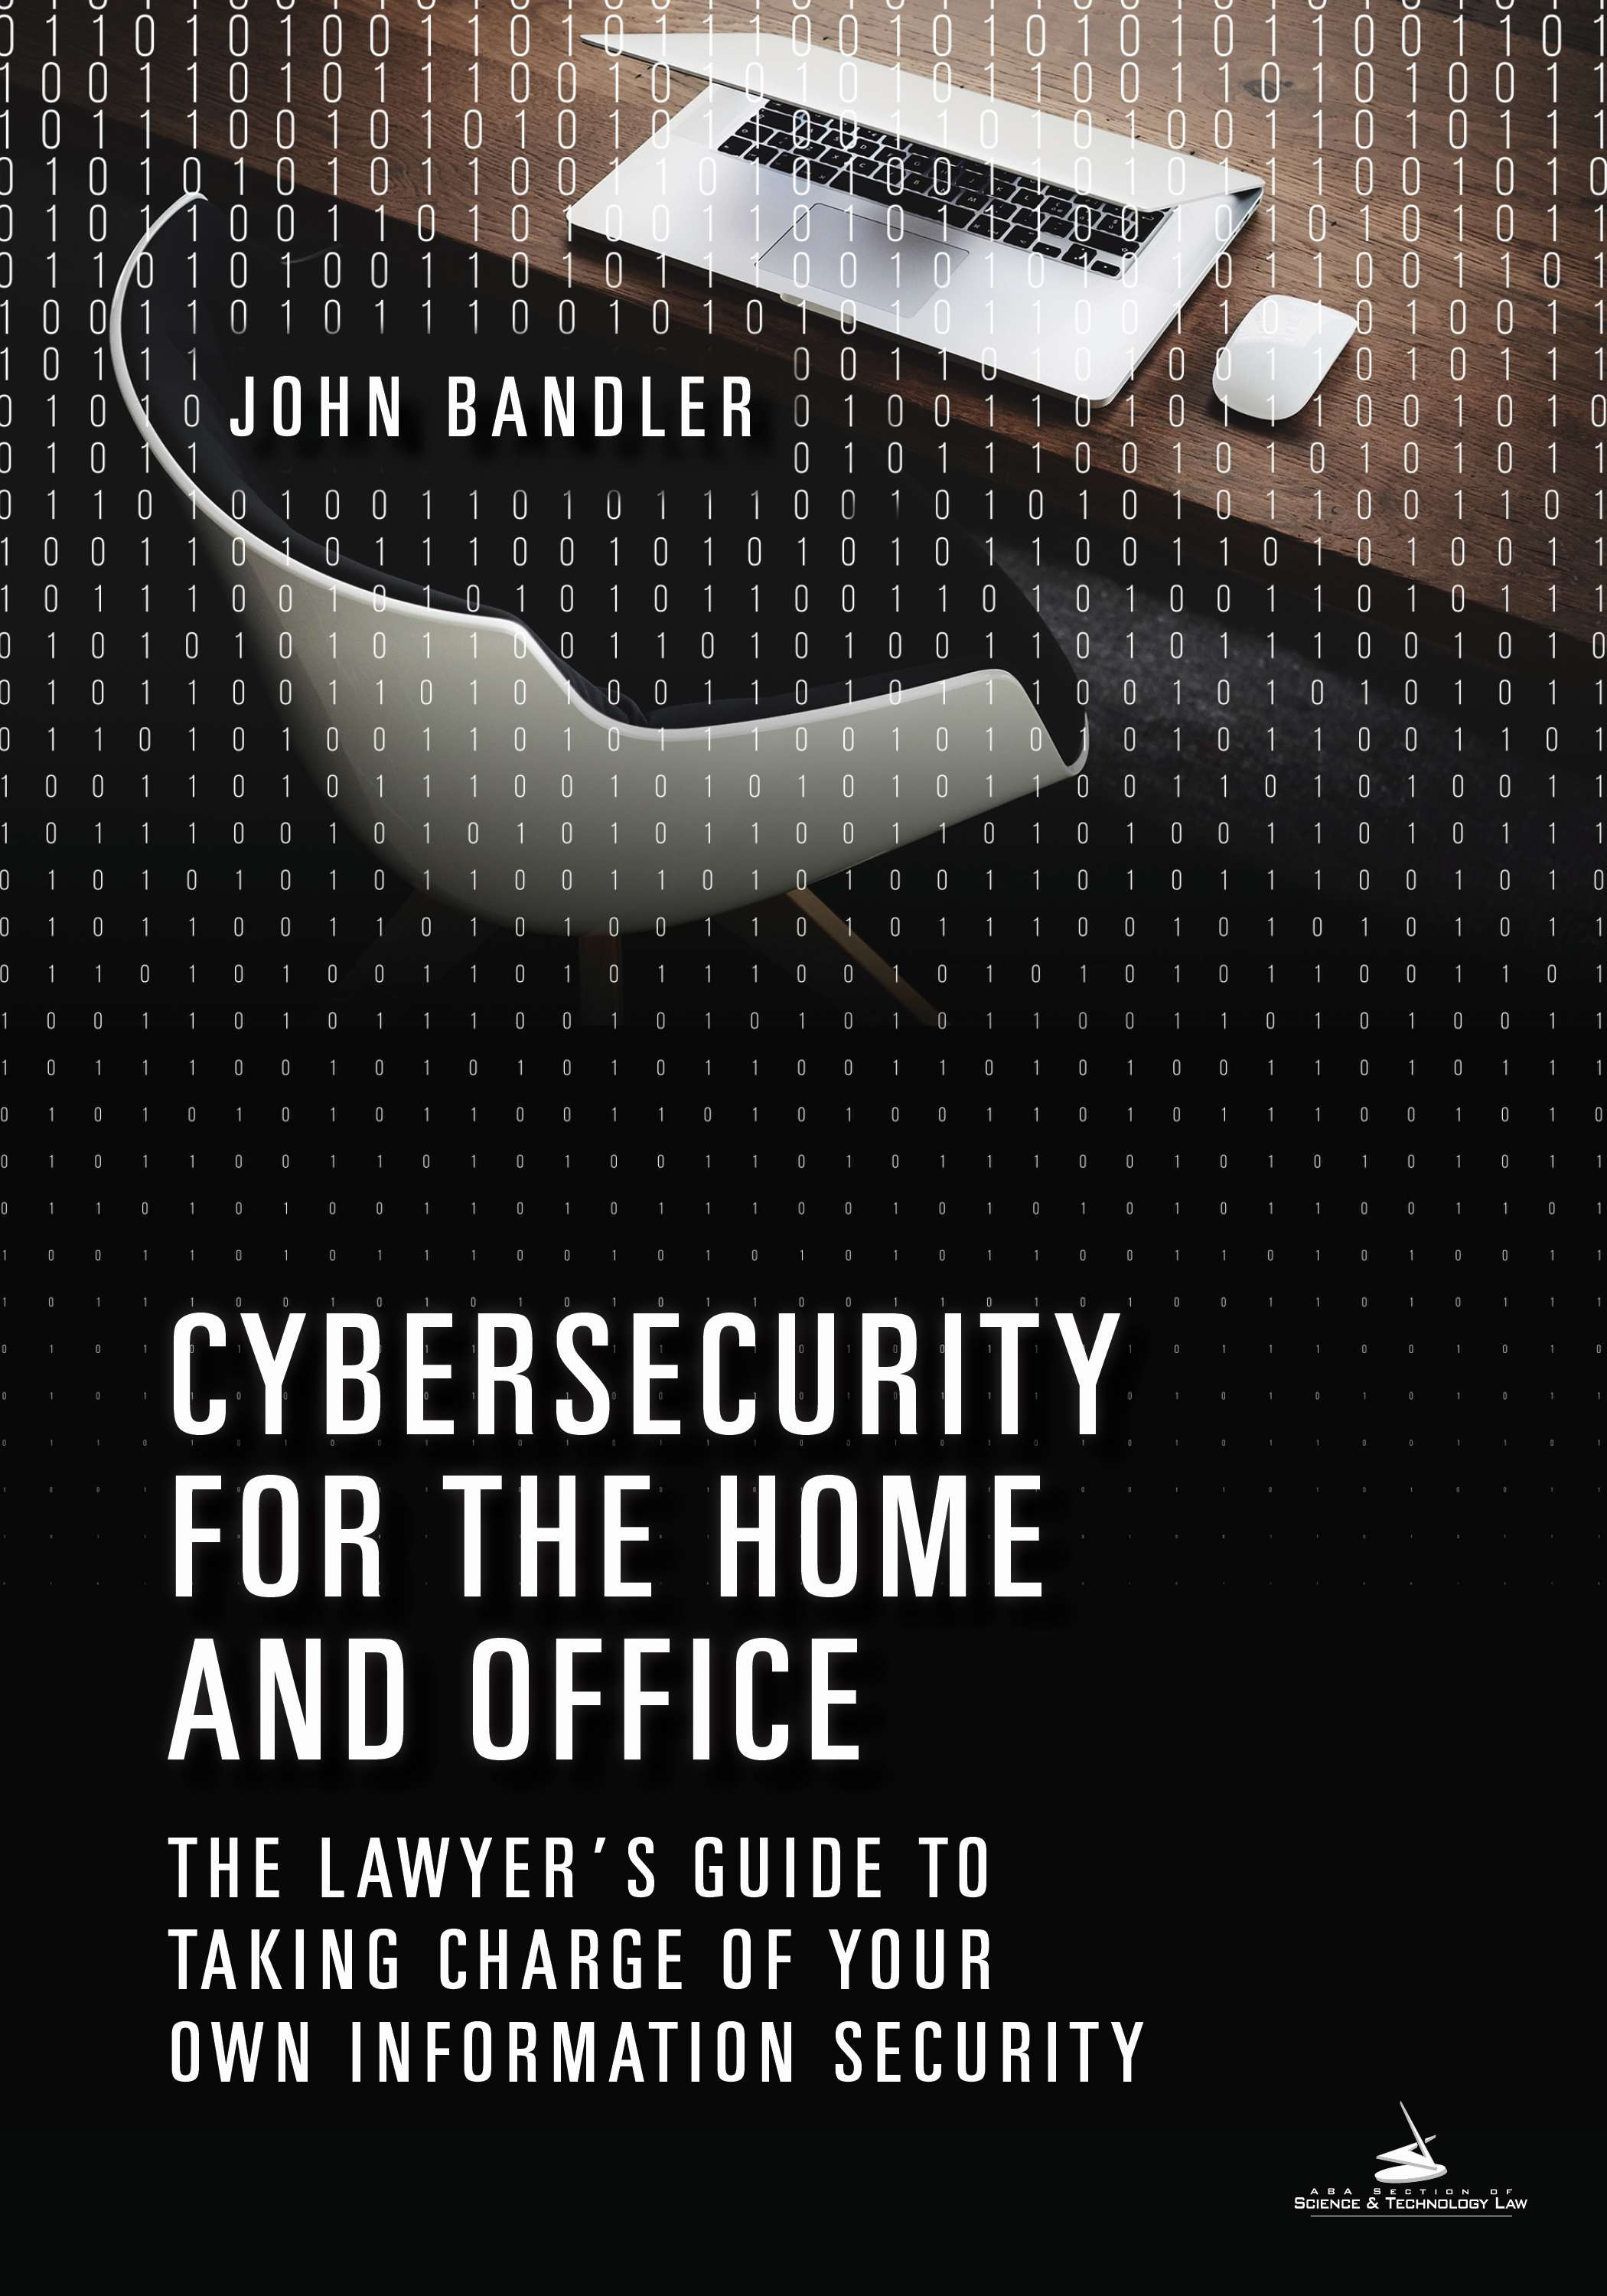 Cybersecurity Home and Office Lo